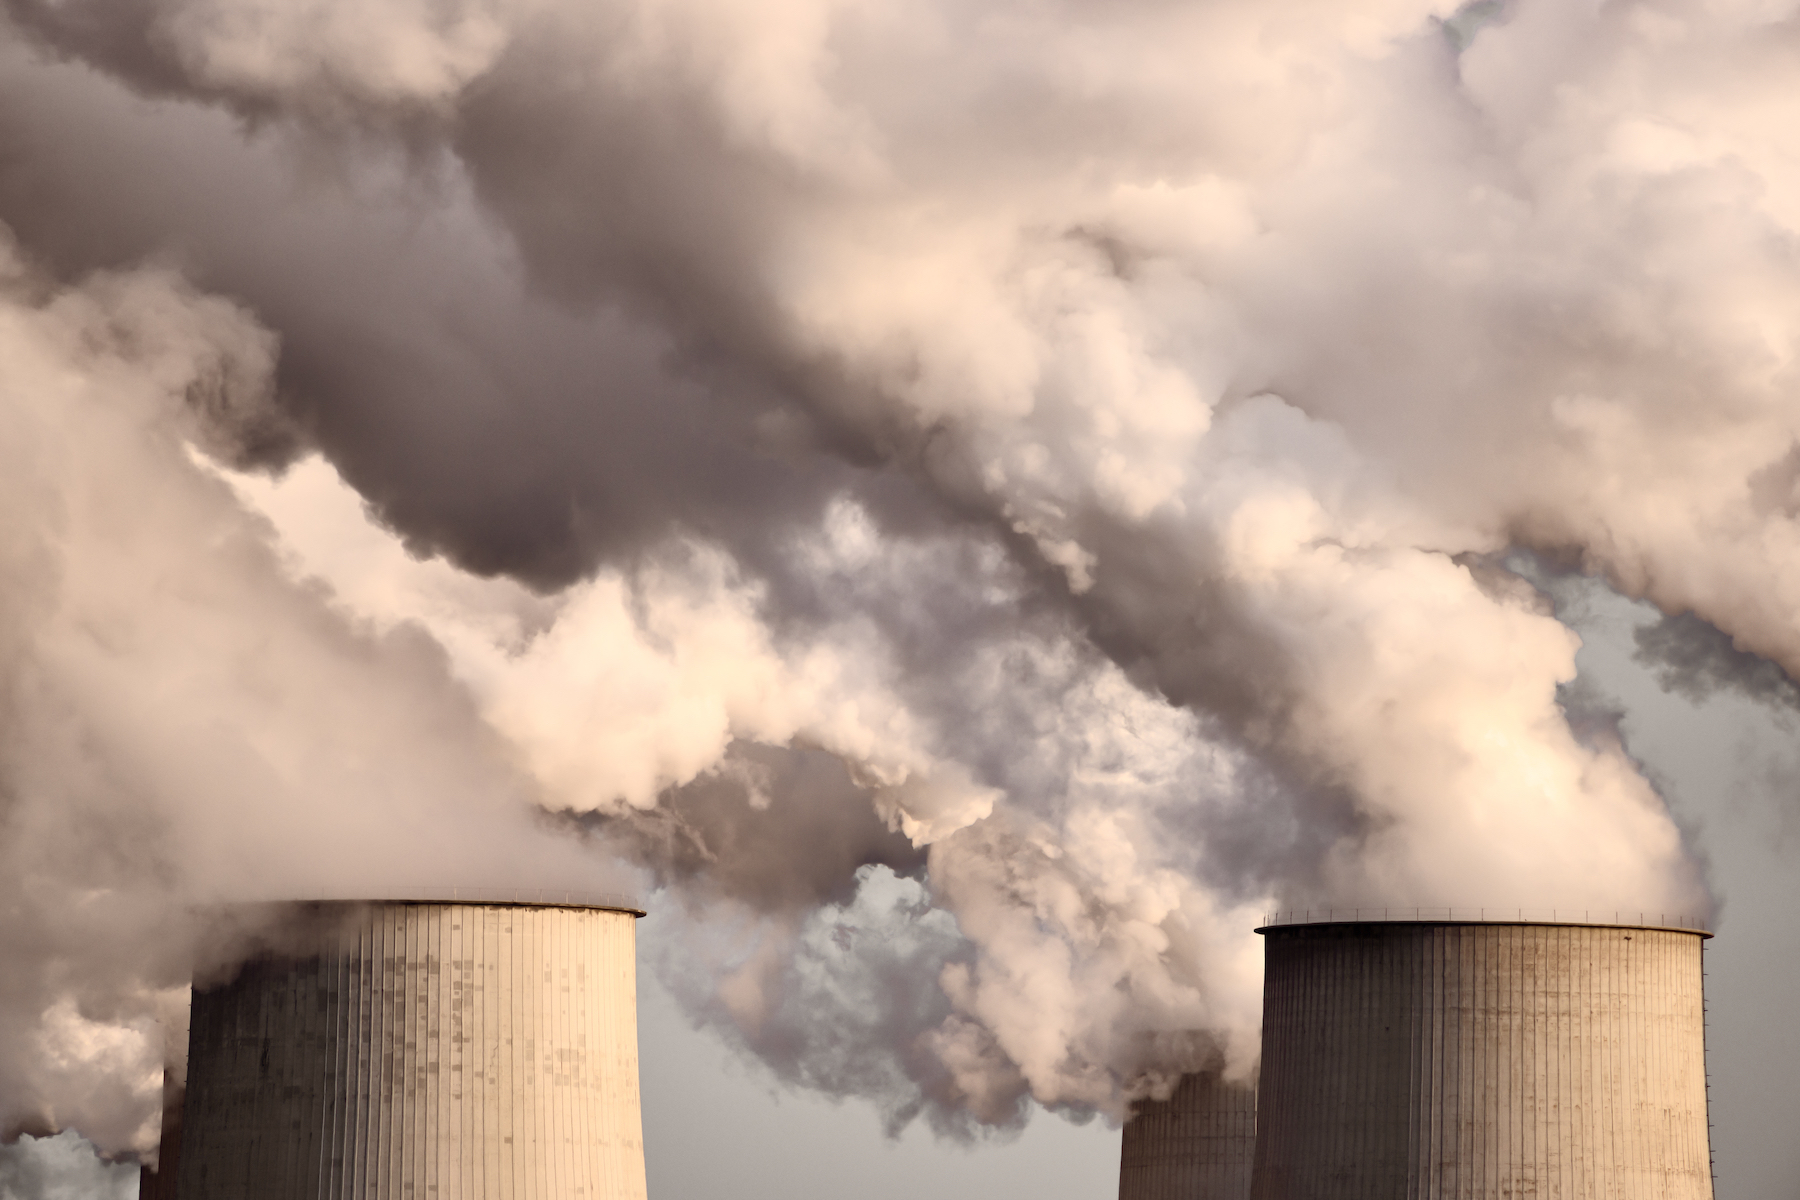 After leveling out for the last three years, global emissions of carbon dioxide are projected to increase by the end of 2017.